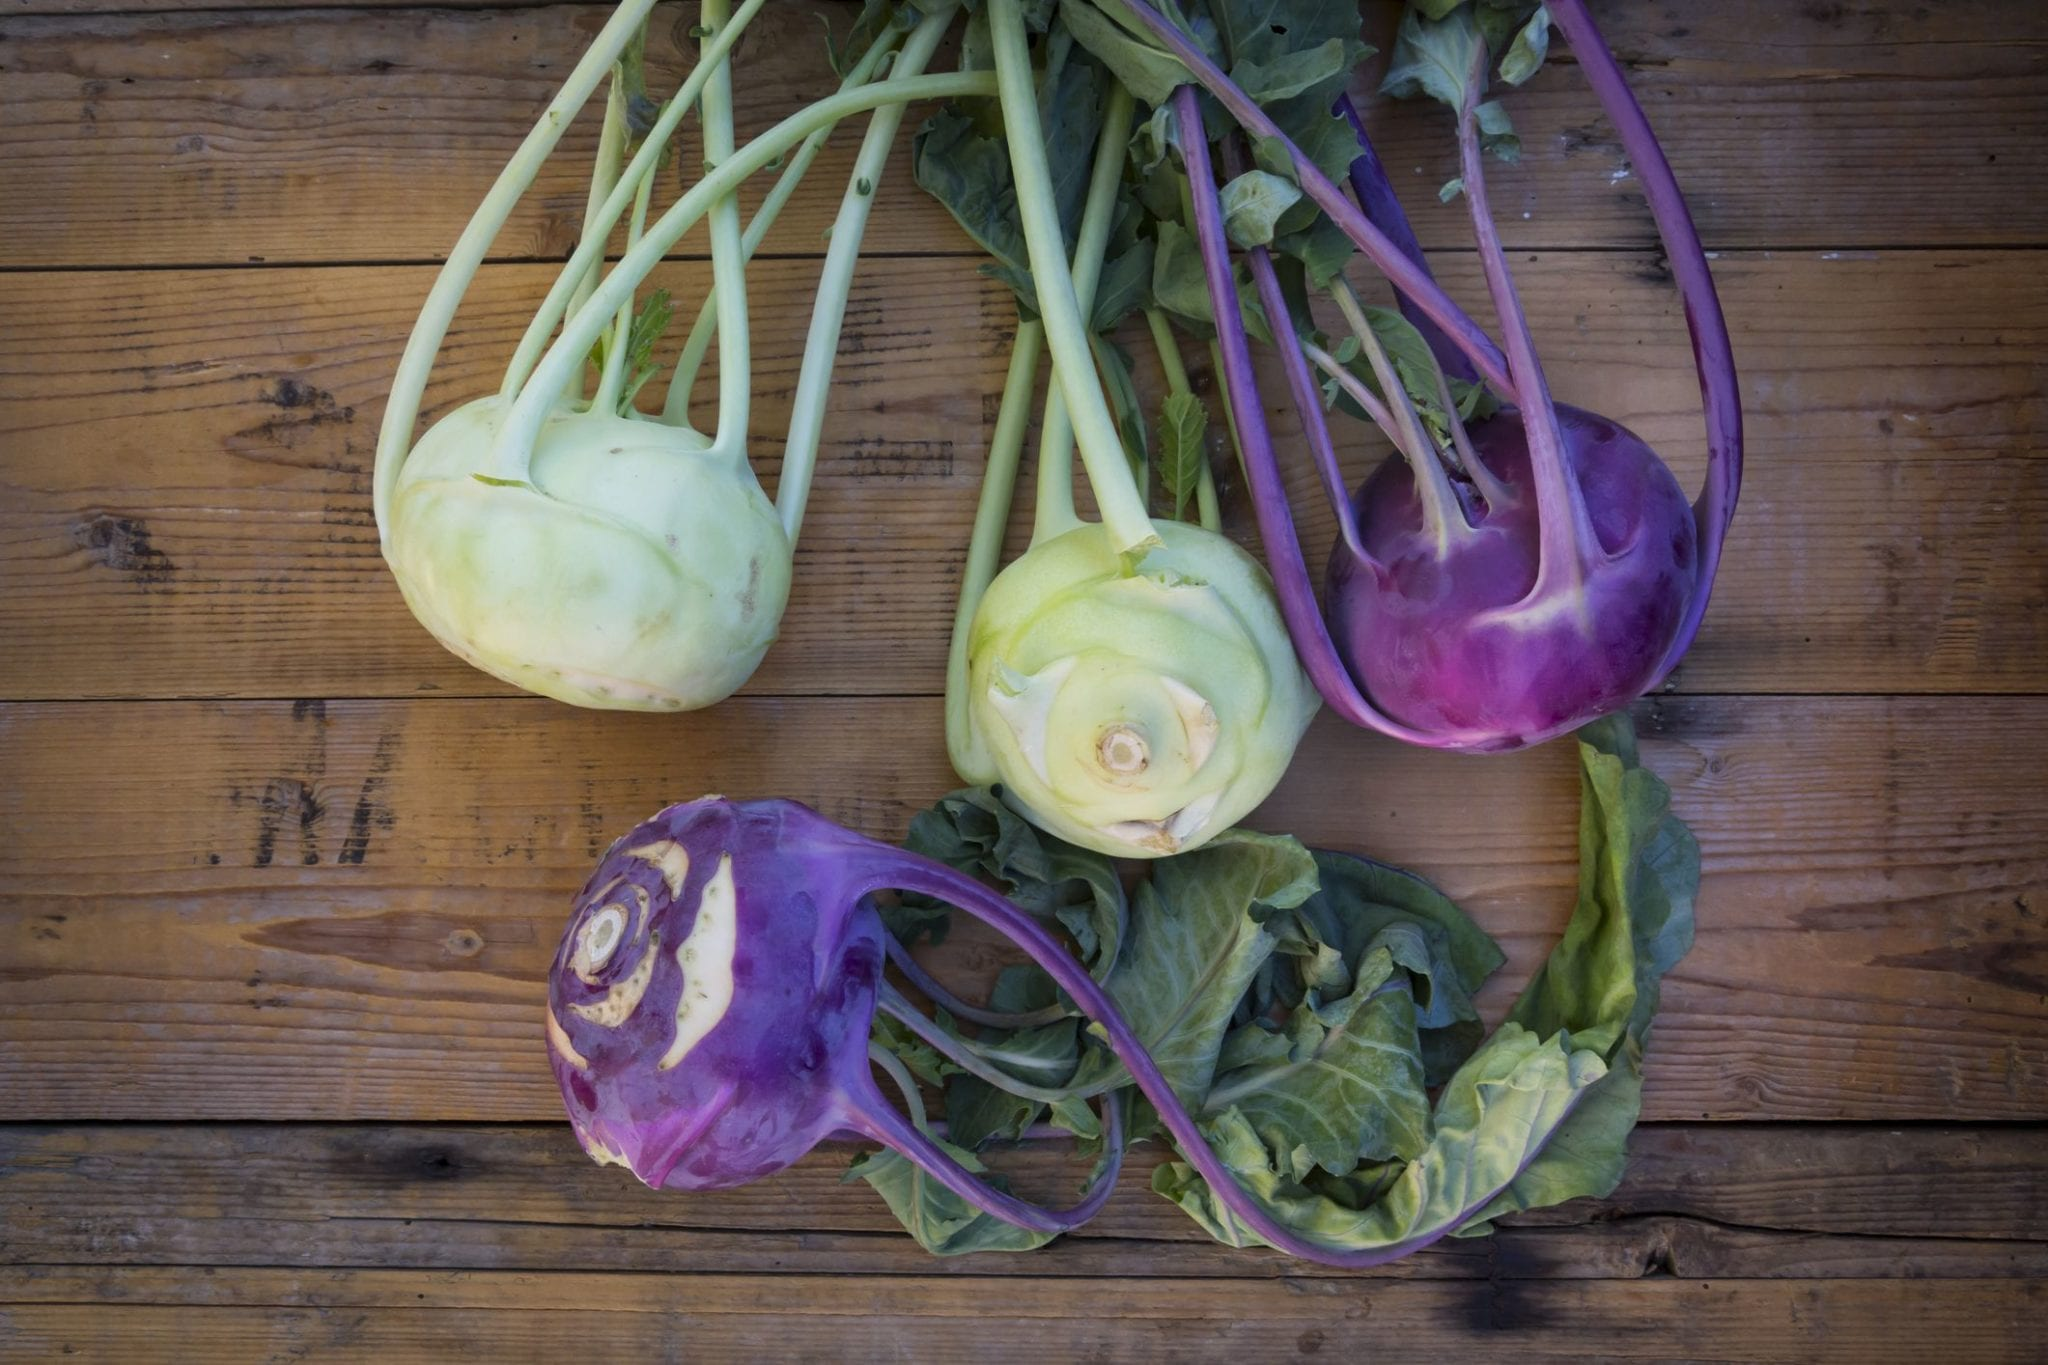 Incredible wholesome properties of Kohlrabi